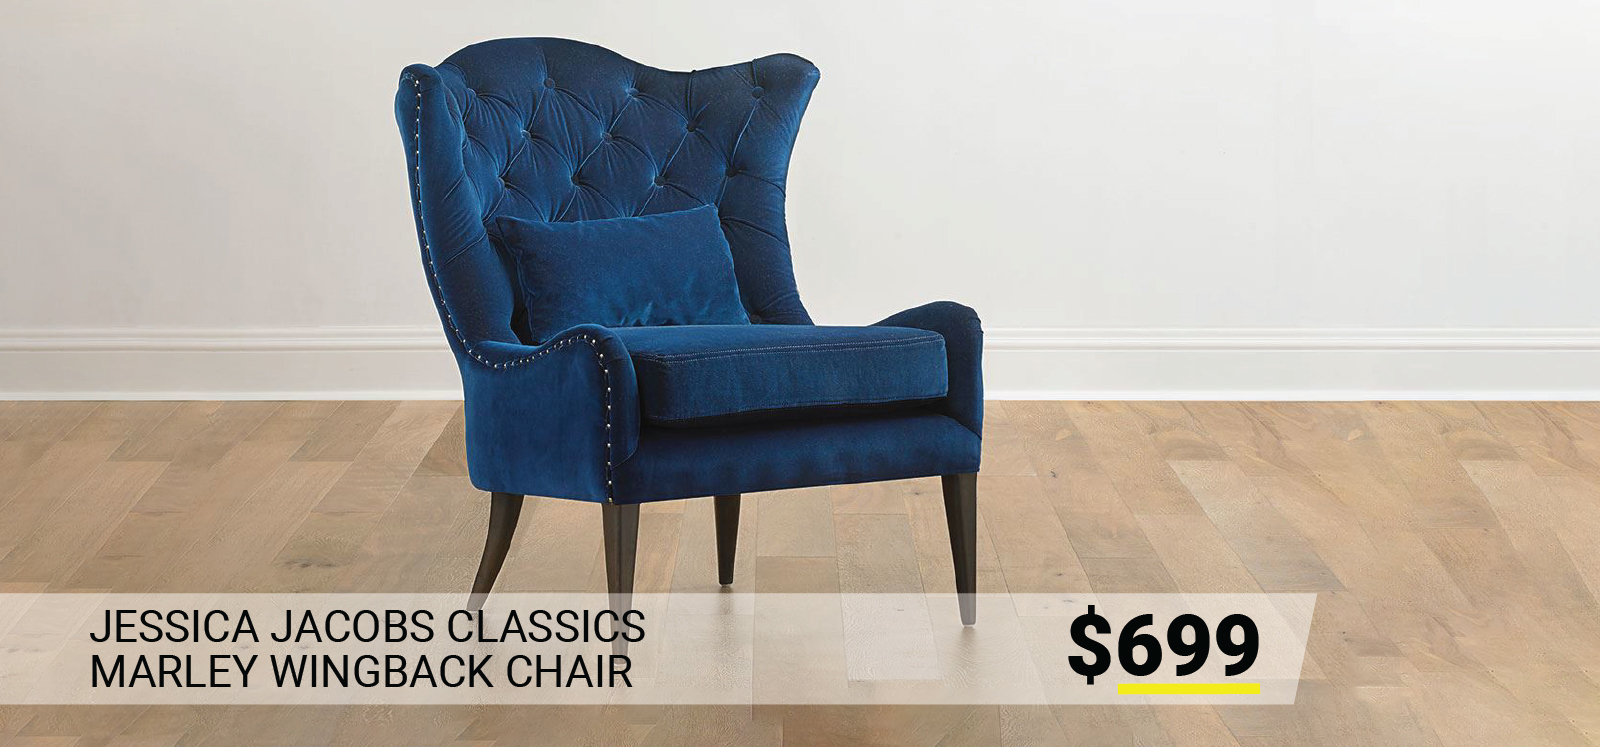 Jessica Jacobs Classics Marley Wingback Chair $699